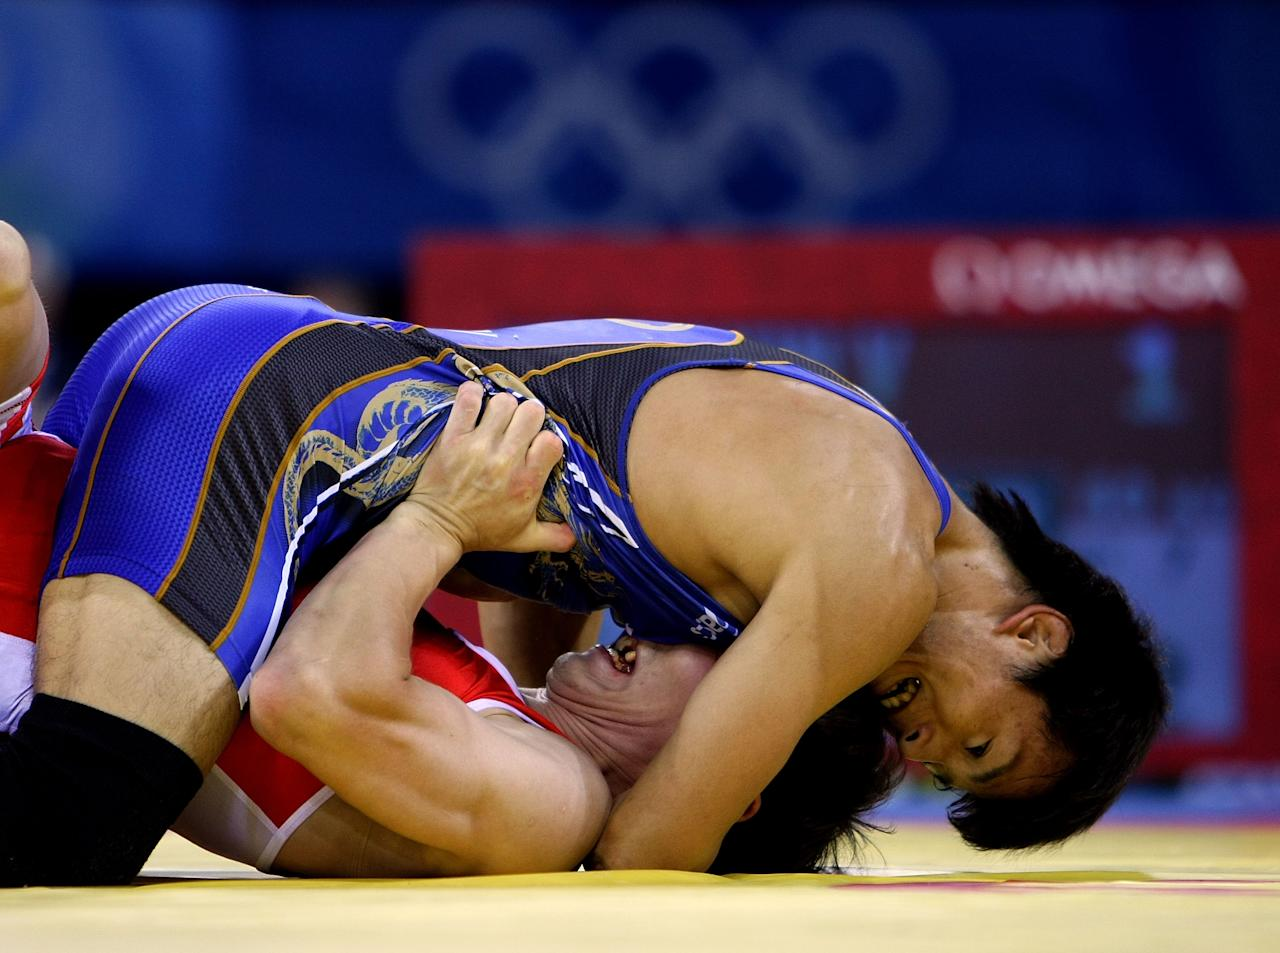 BEIJING - AUGUST 19:  Kenichi Yumoto (blue) of Japan competes against Vitaly Koryakin (red) of Tajikistan in the 60 kg freestyle wrestling event at the China Agriculture University Gymnasium on Day 11 of the Beijing 2008 Olympic Games on August 19, 2008 in Beijing, China.  (Photo by Jed Jacobsohn/Getty Images)